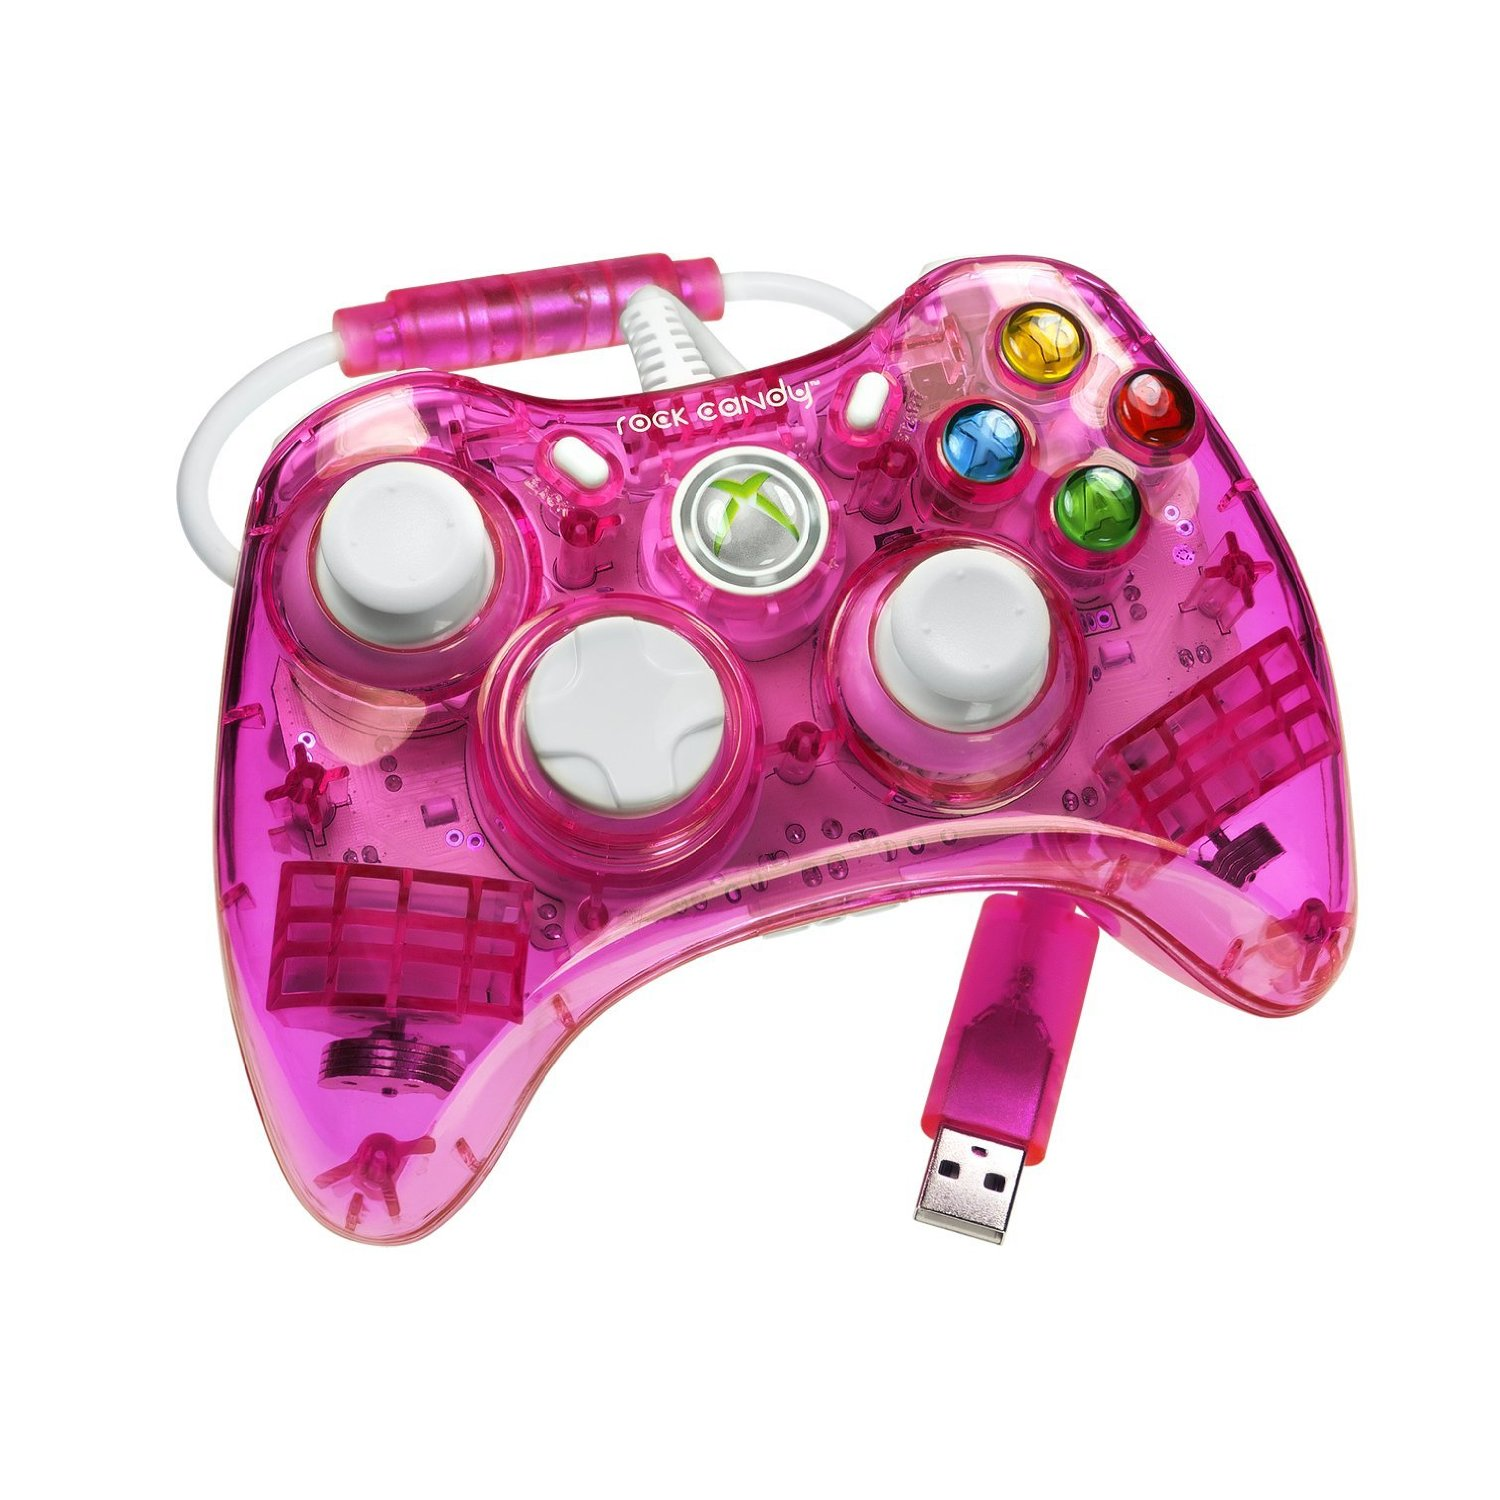 Rock Candy Pink XBOX 360 Wired Controller Neon Pink XBOX Gaming Accessory Cables4all